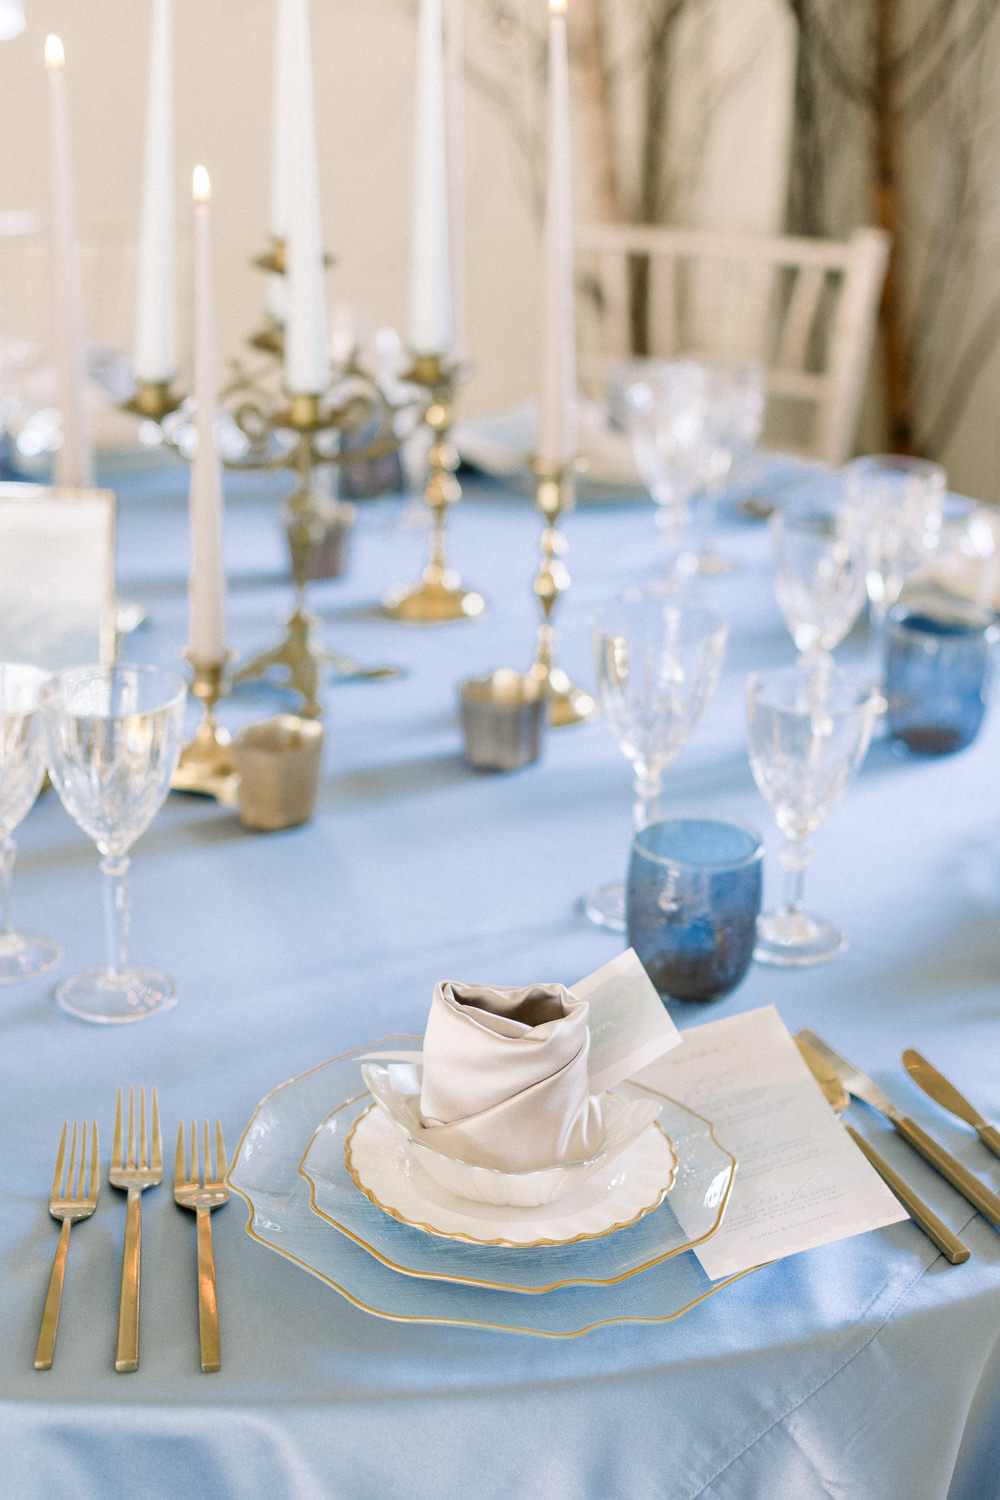 Place Setting Decor Napkin Winter Blue Barn Wedding Ideas Joanna Briggs Photography